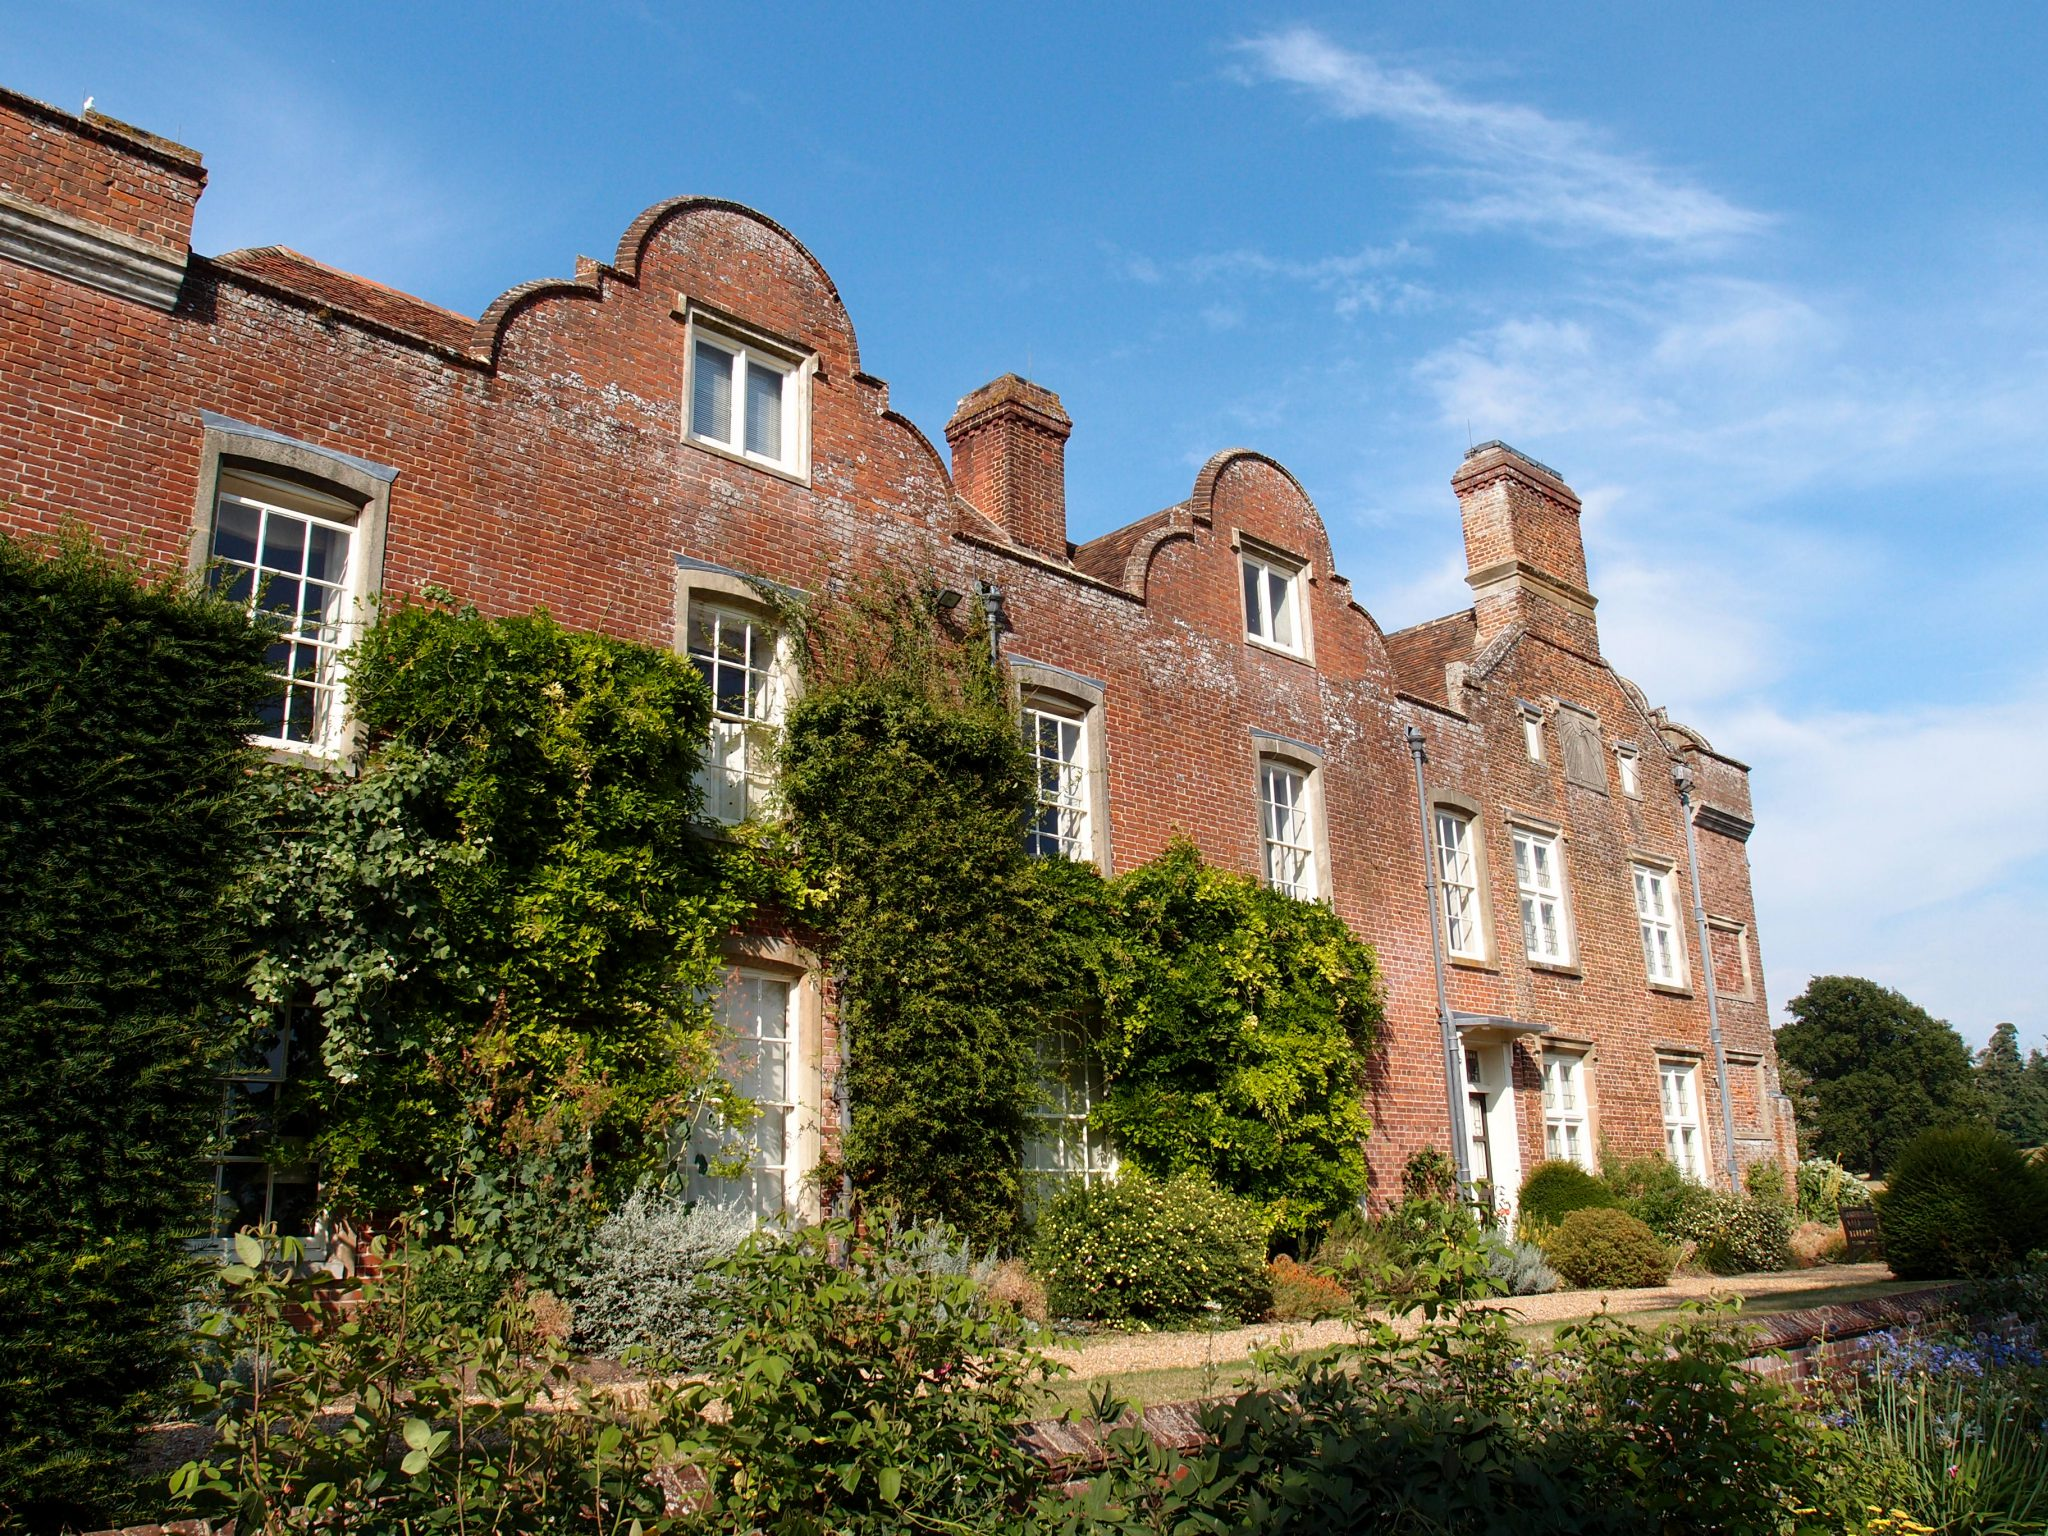 The South Face of the House overlooks the Rose Garden